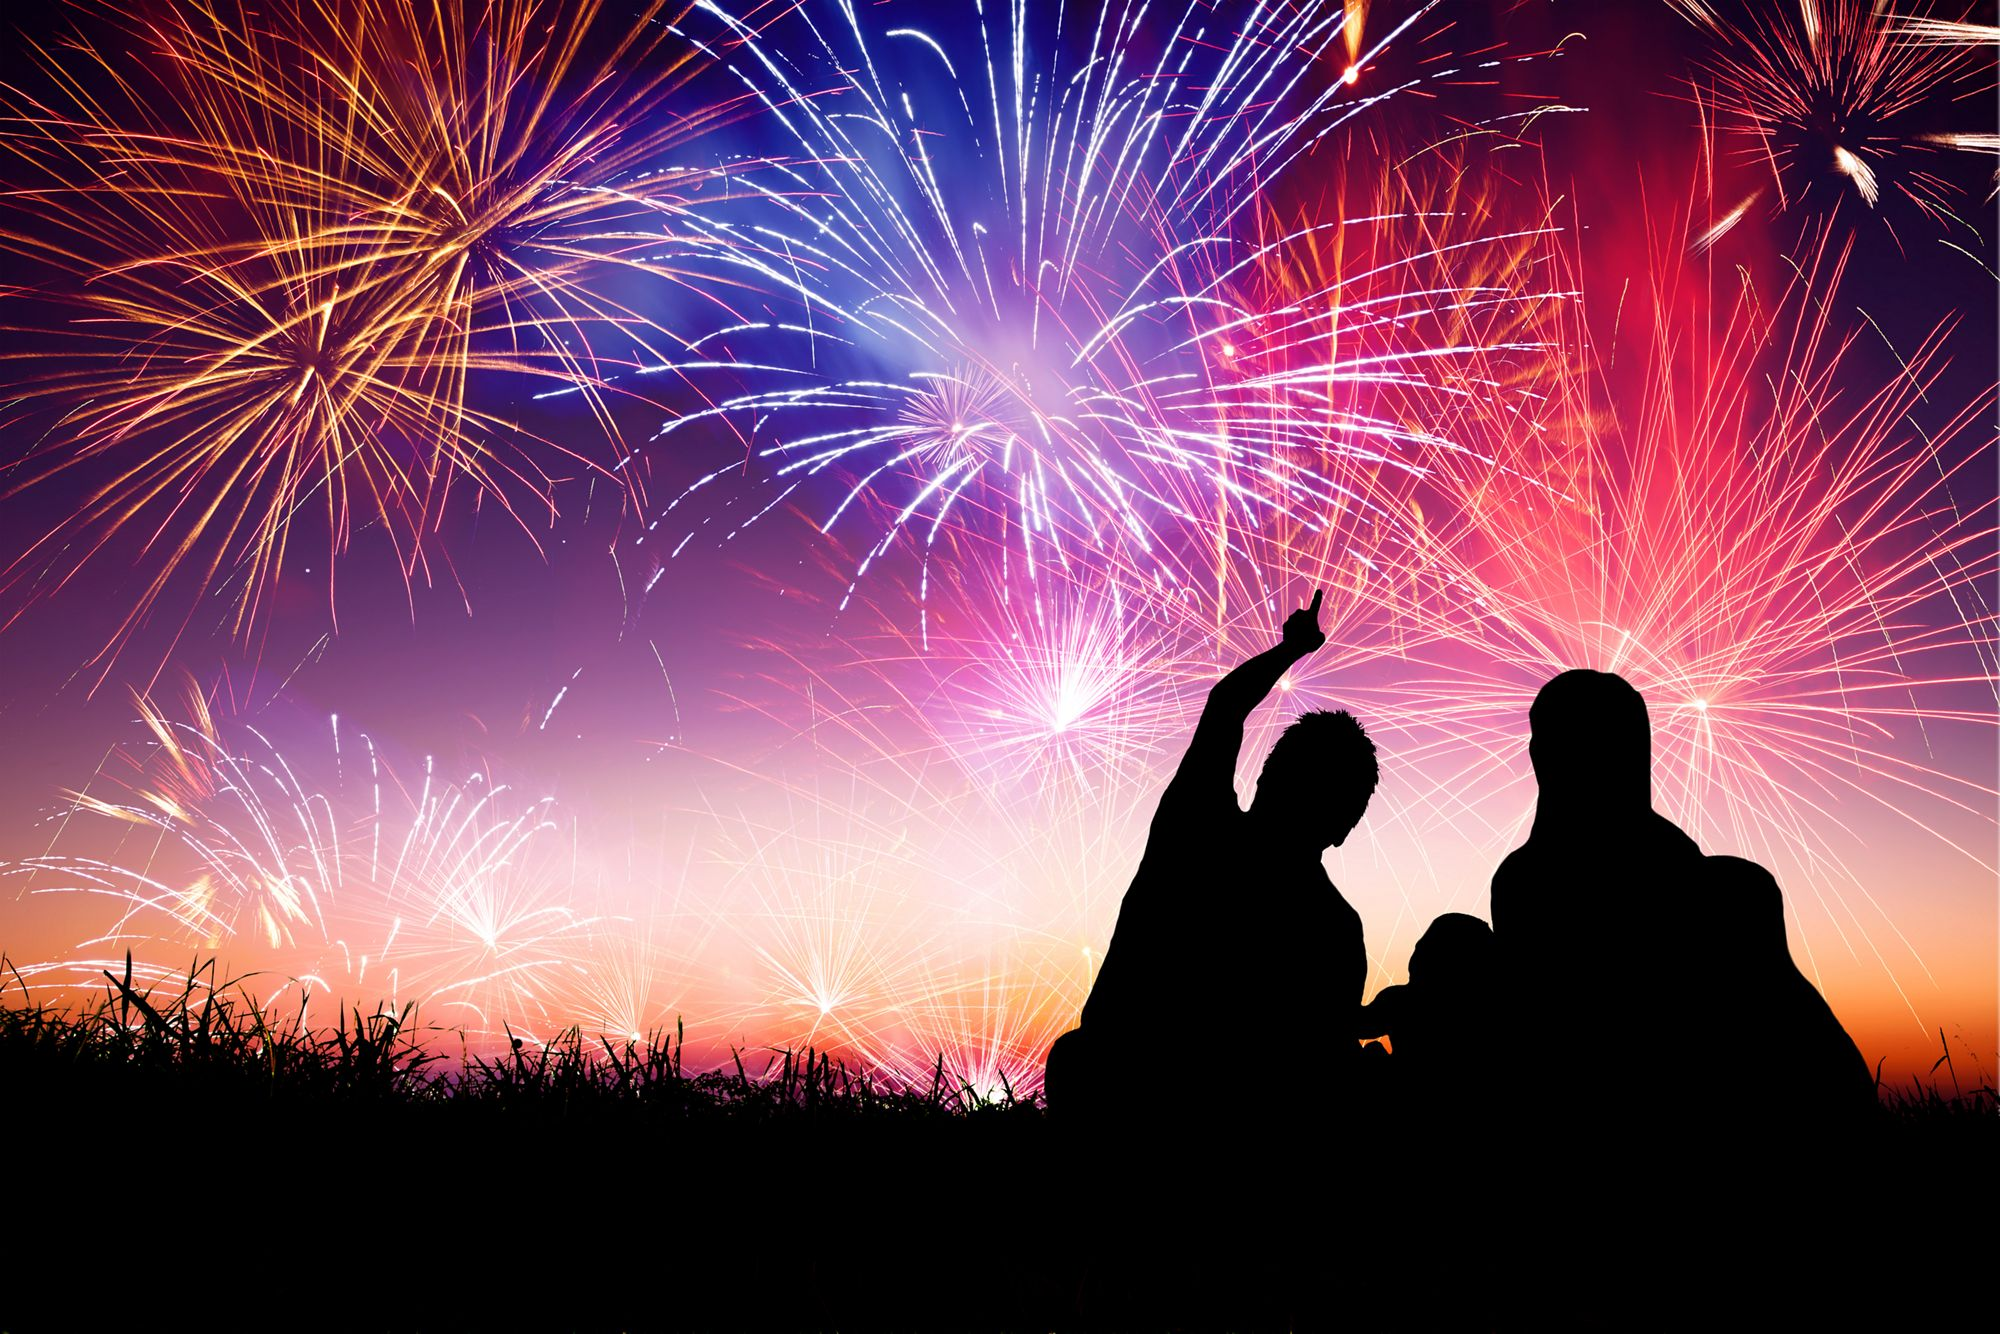 Two people look up at a sky of fireworks